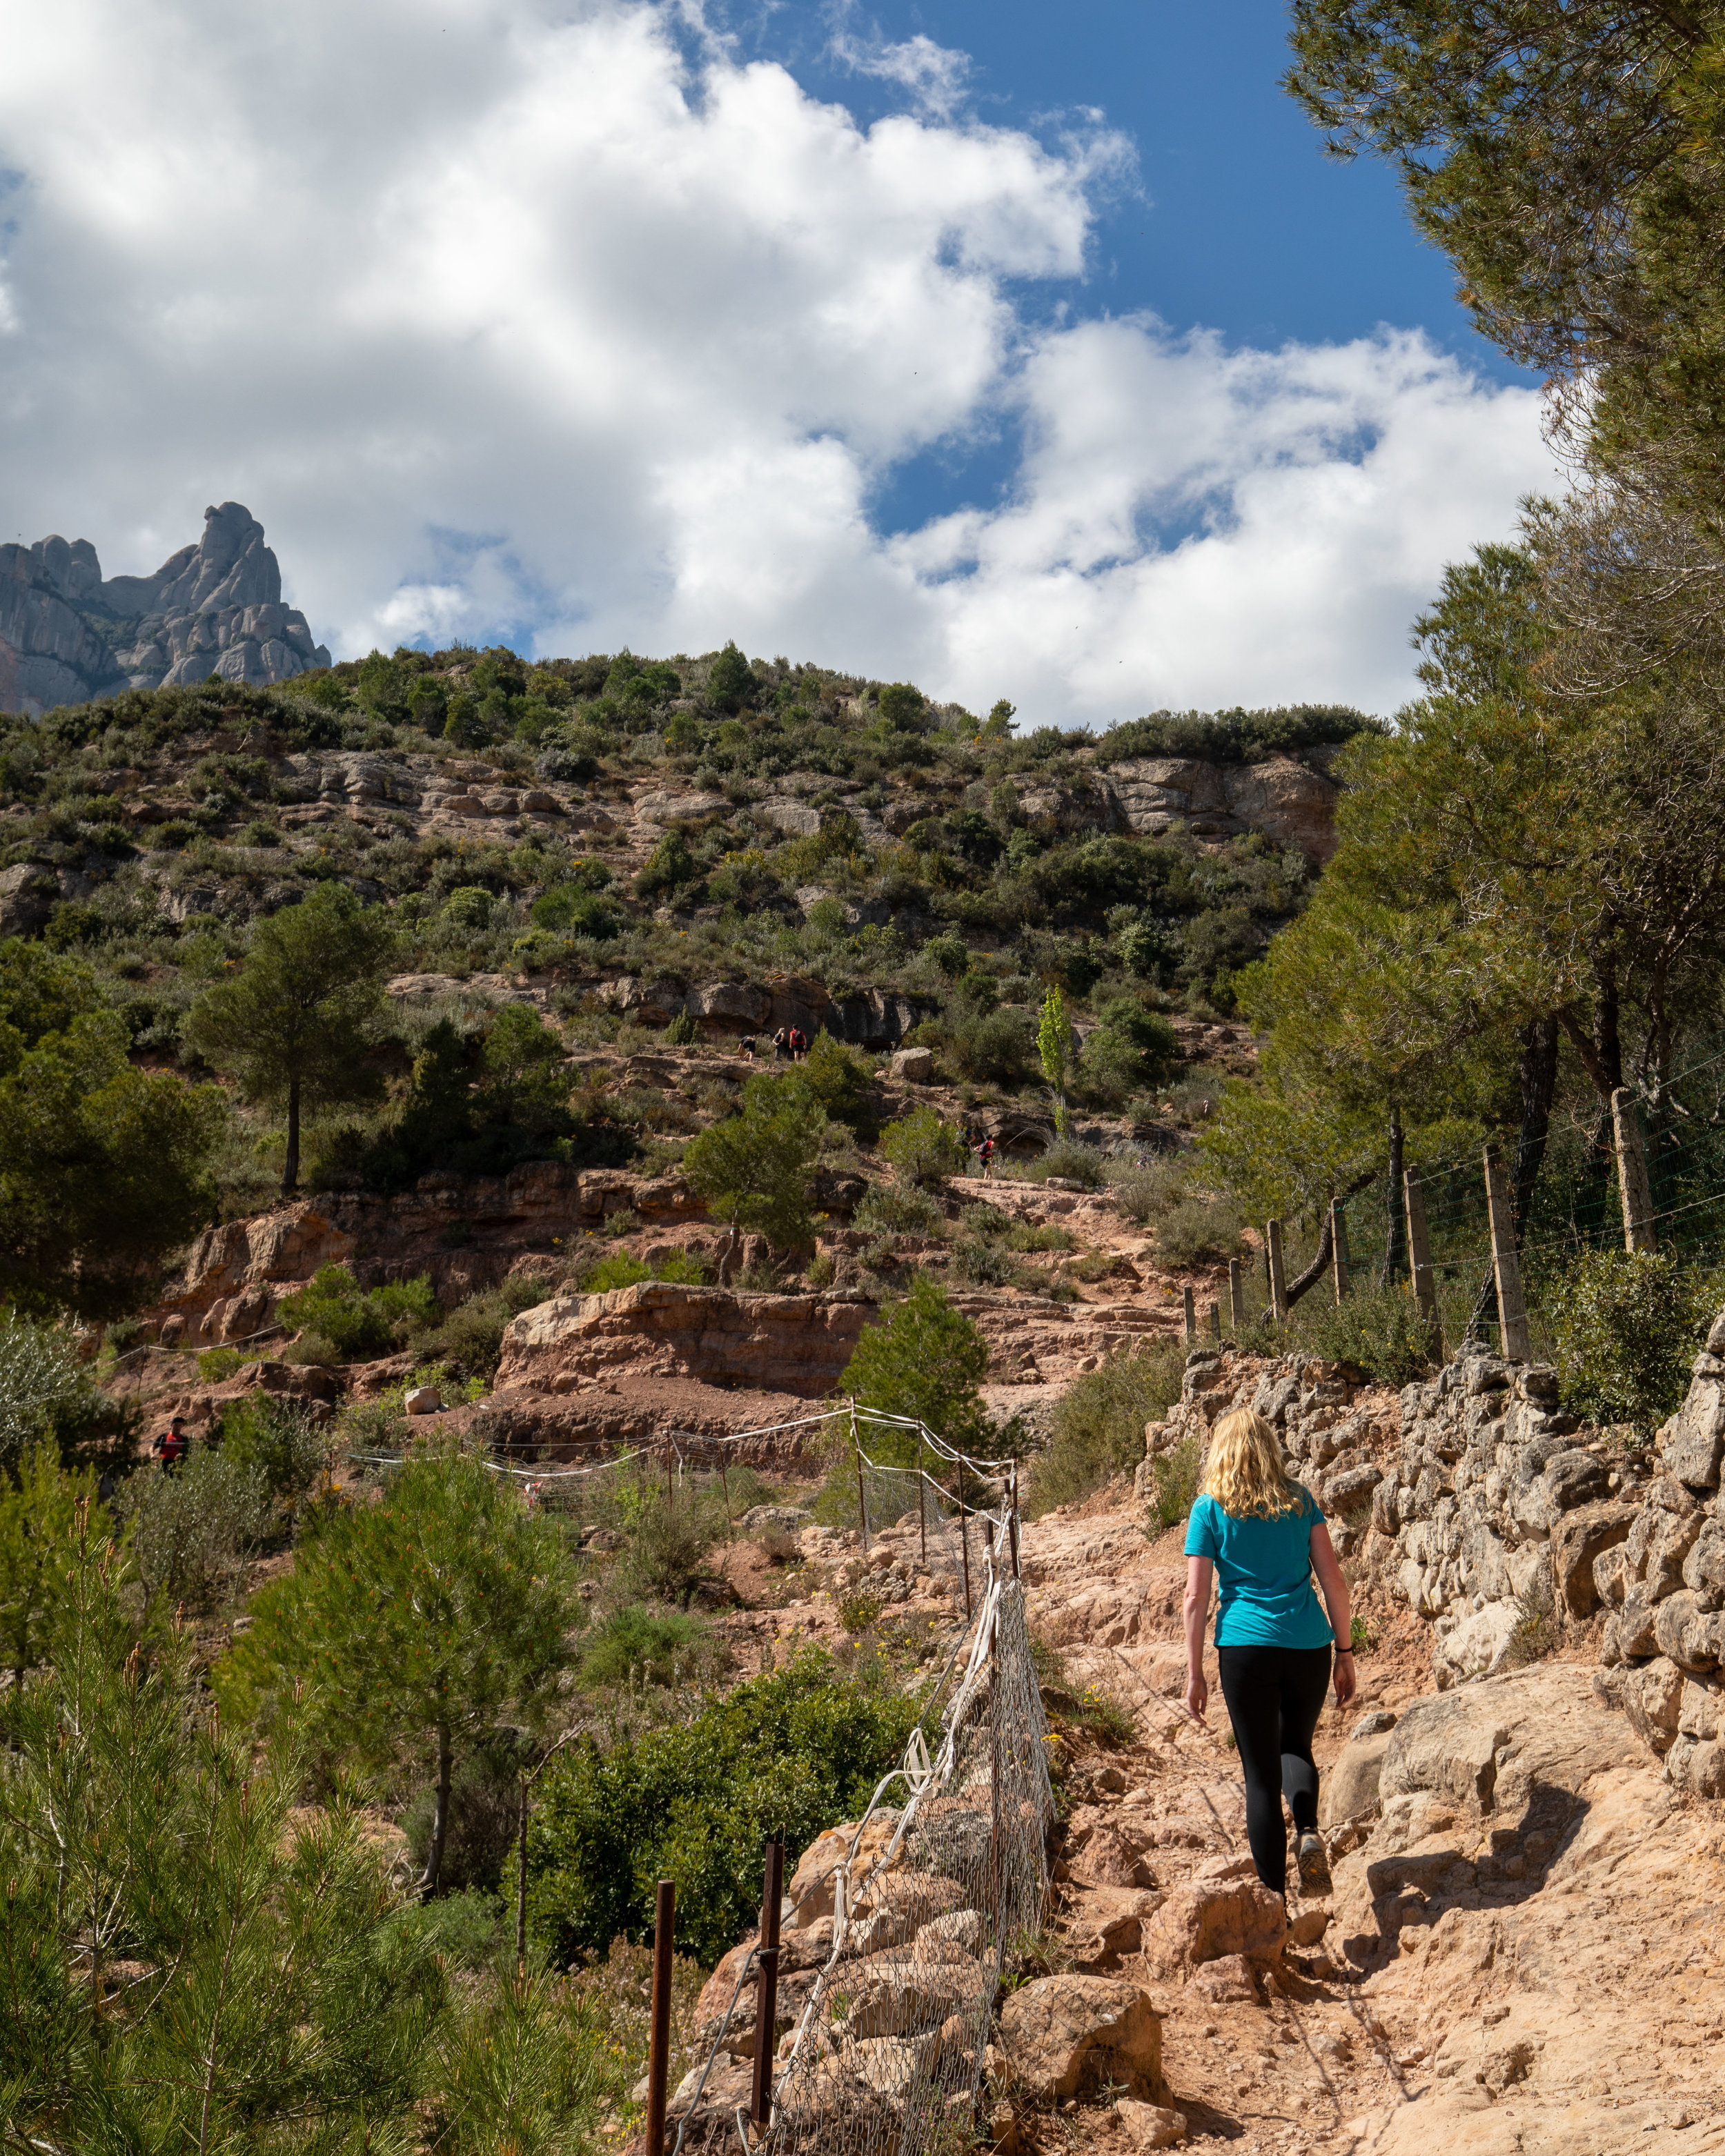 The hiking path to the top of Montserrat